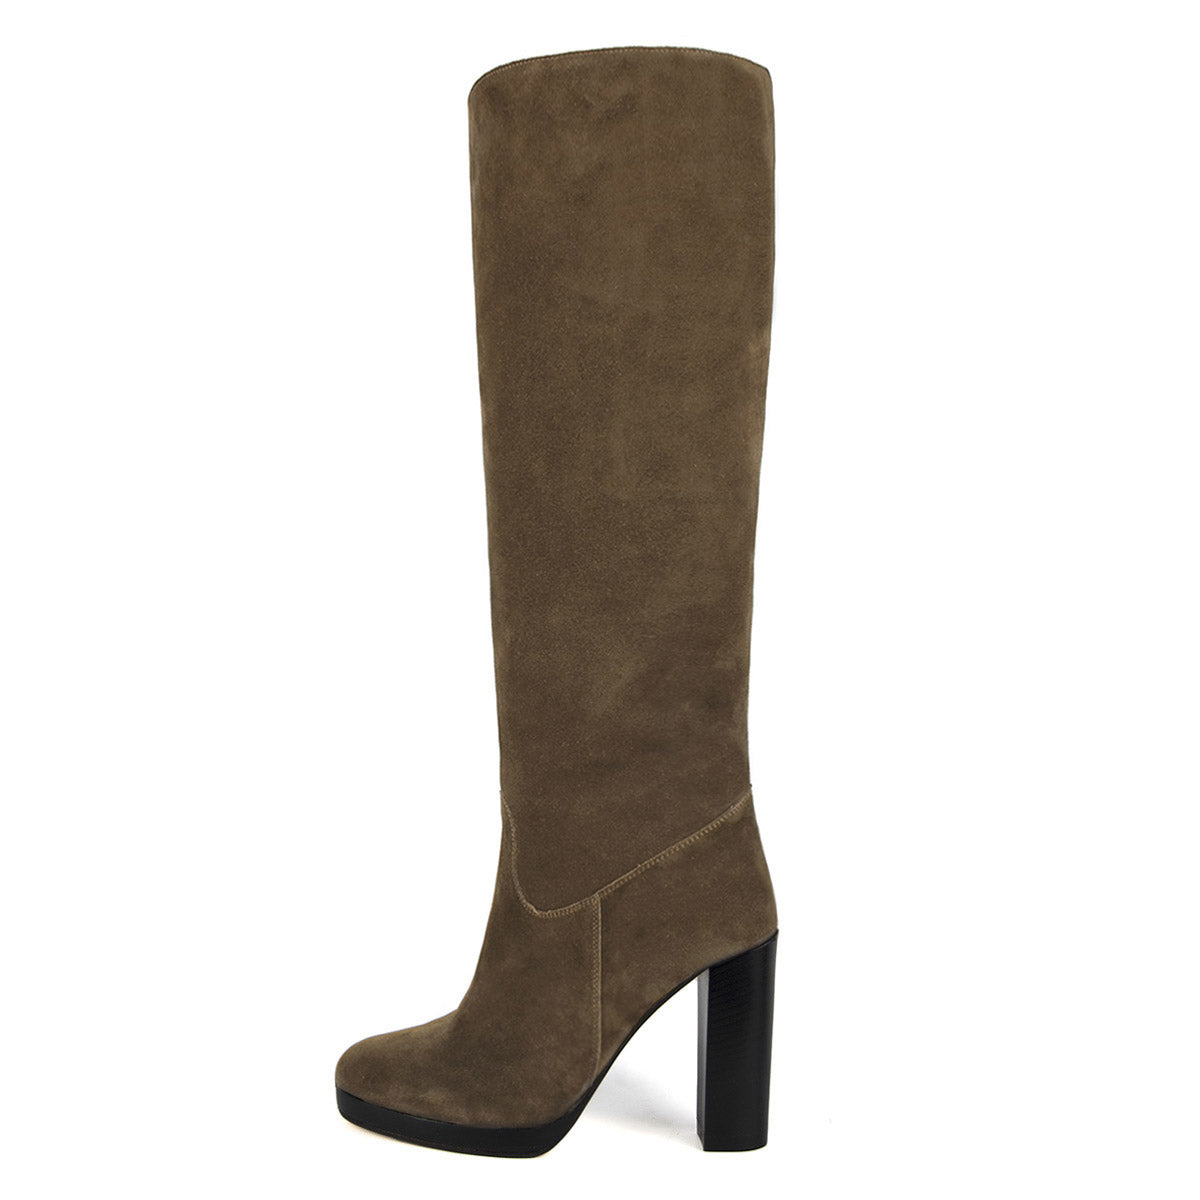 Ribes suede, sand - wide calf boots, large fit boots, calf fitting boots, narrow calf boots